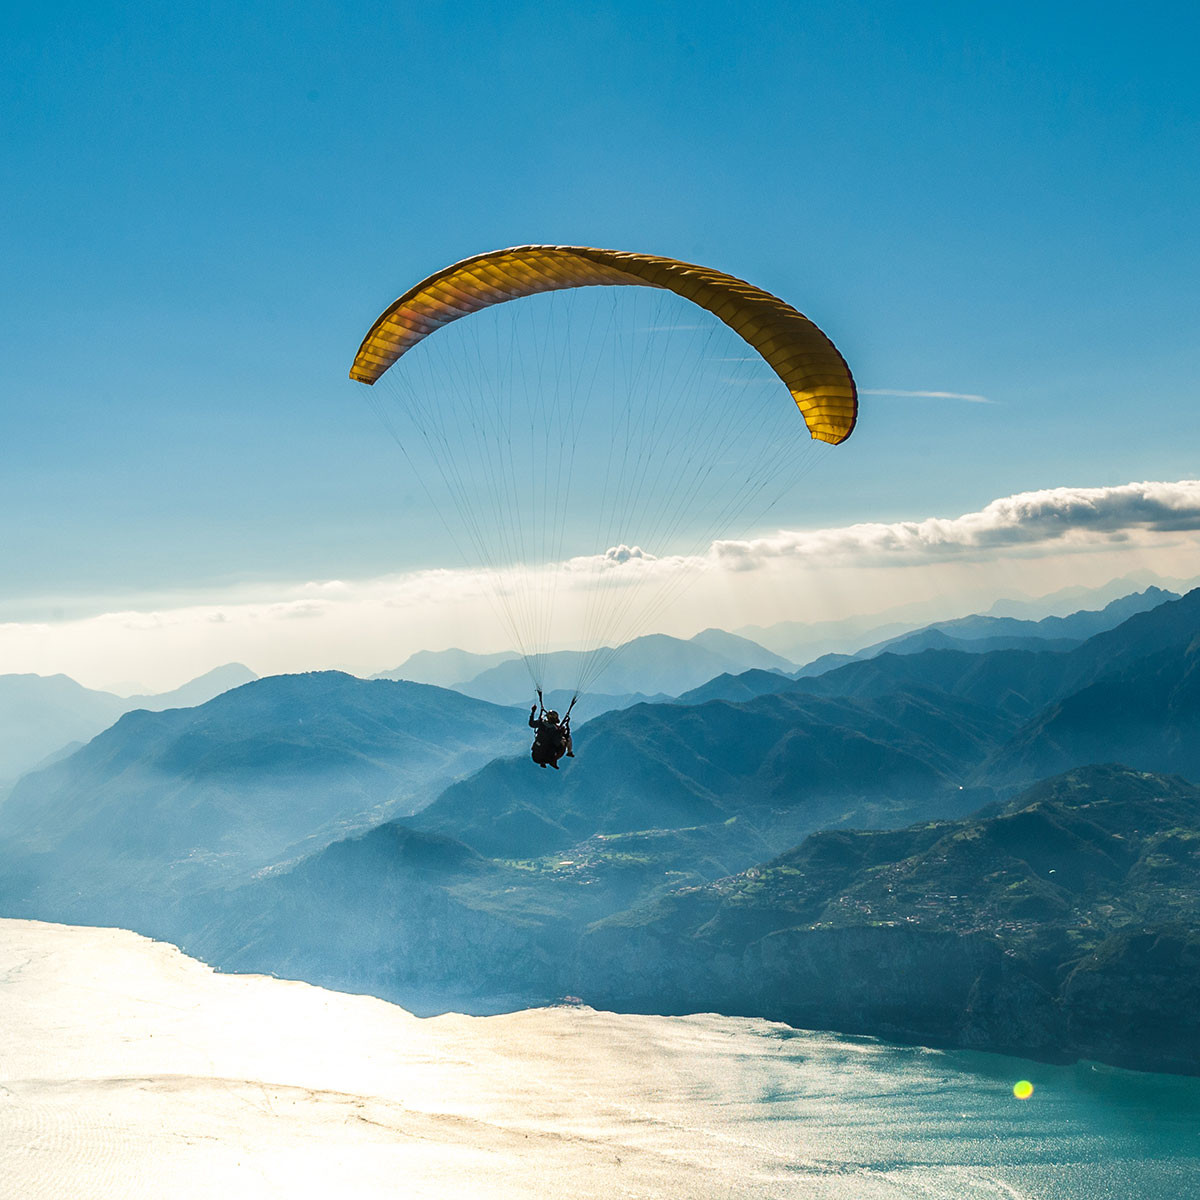 Garda Air Style Lake Garda Photo by Angela Trawoeger